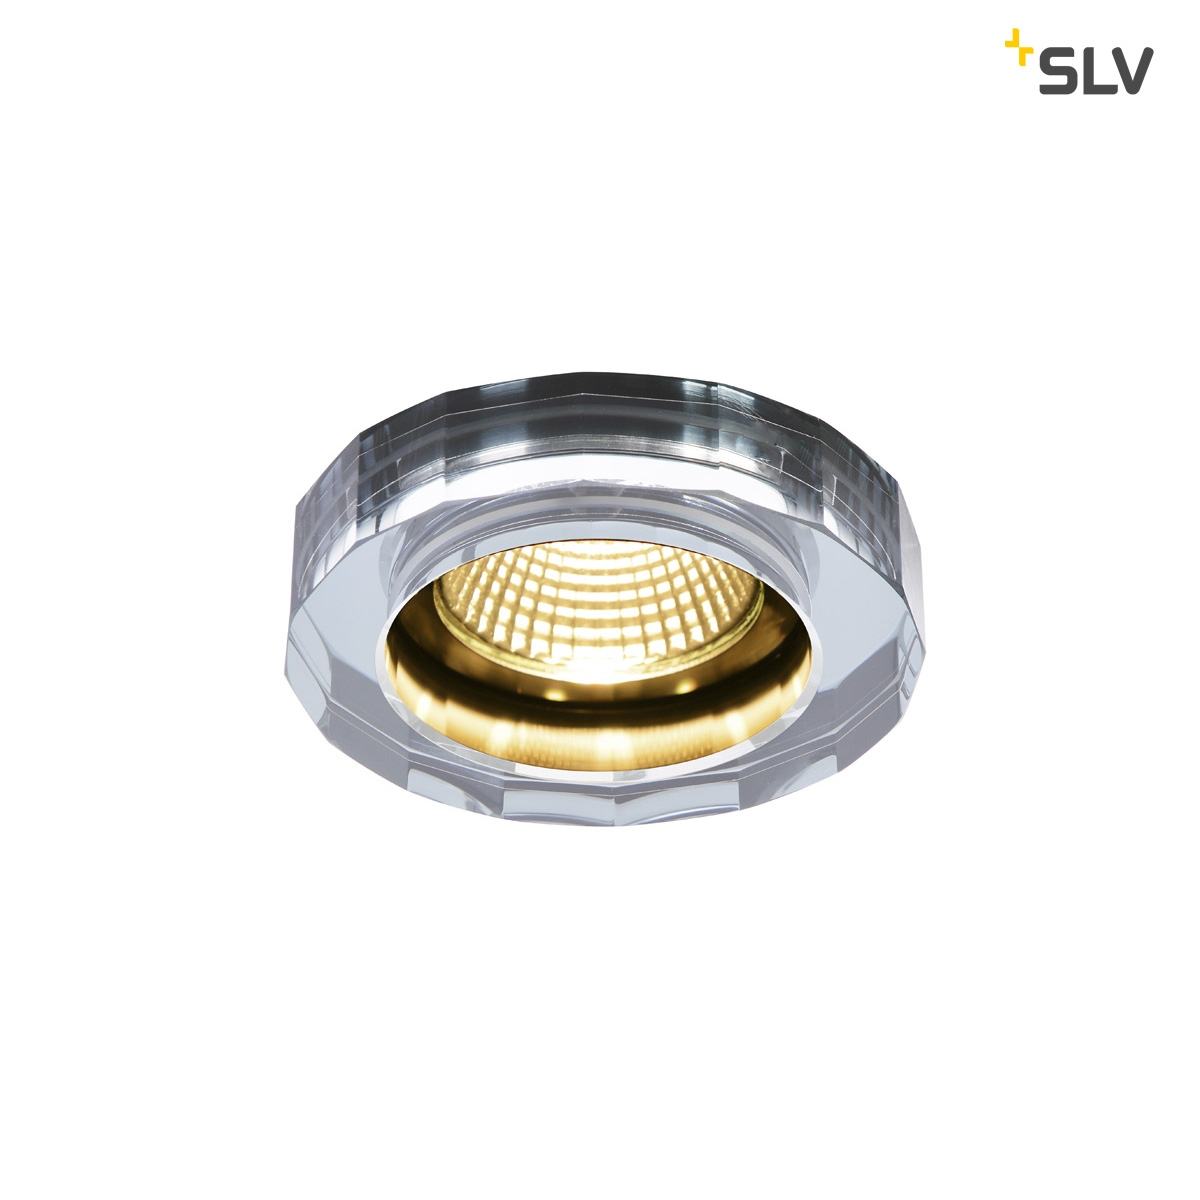 SLV Crystal Downlight